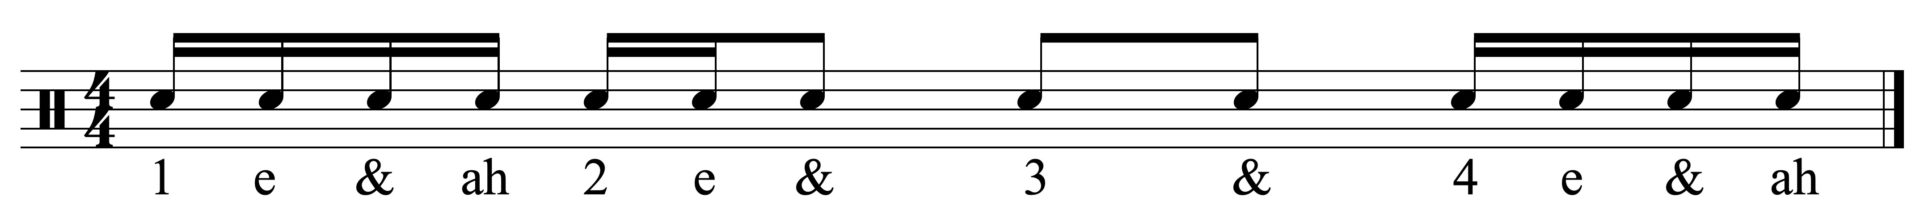 The basic rhythm for the fill